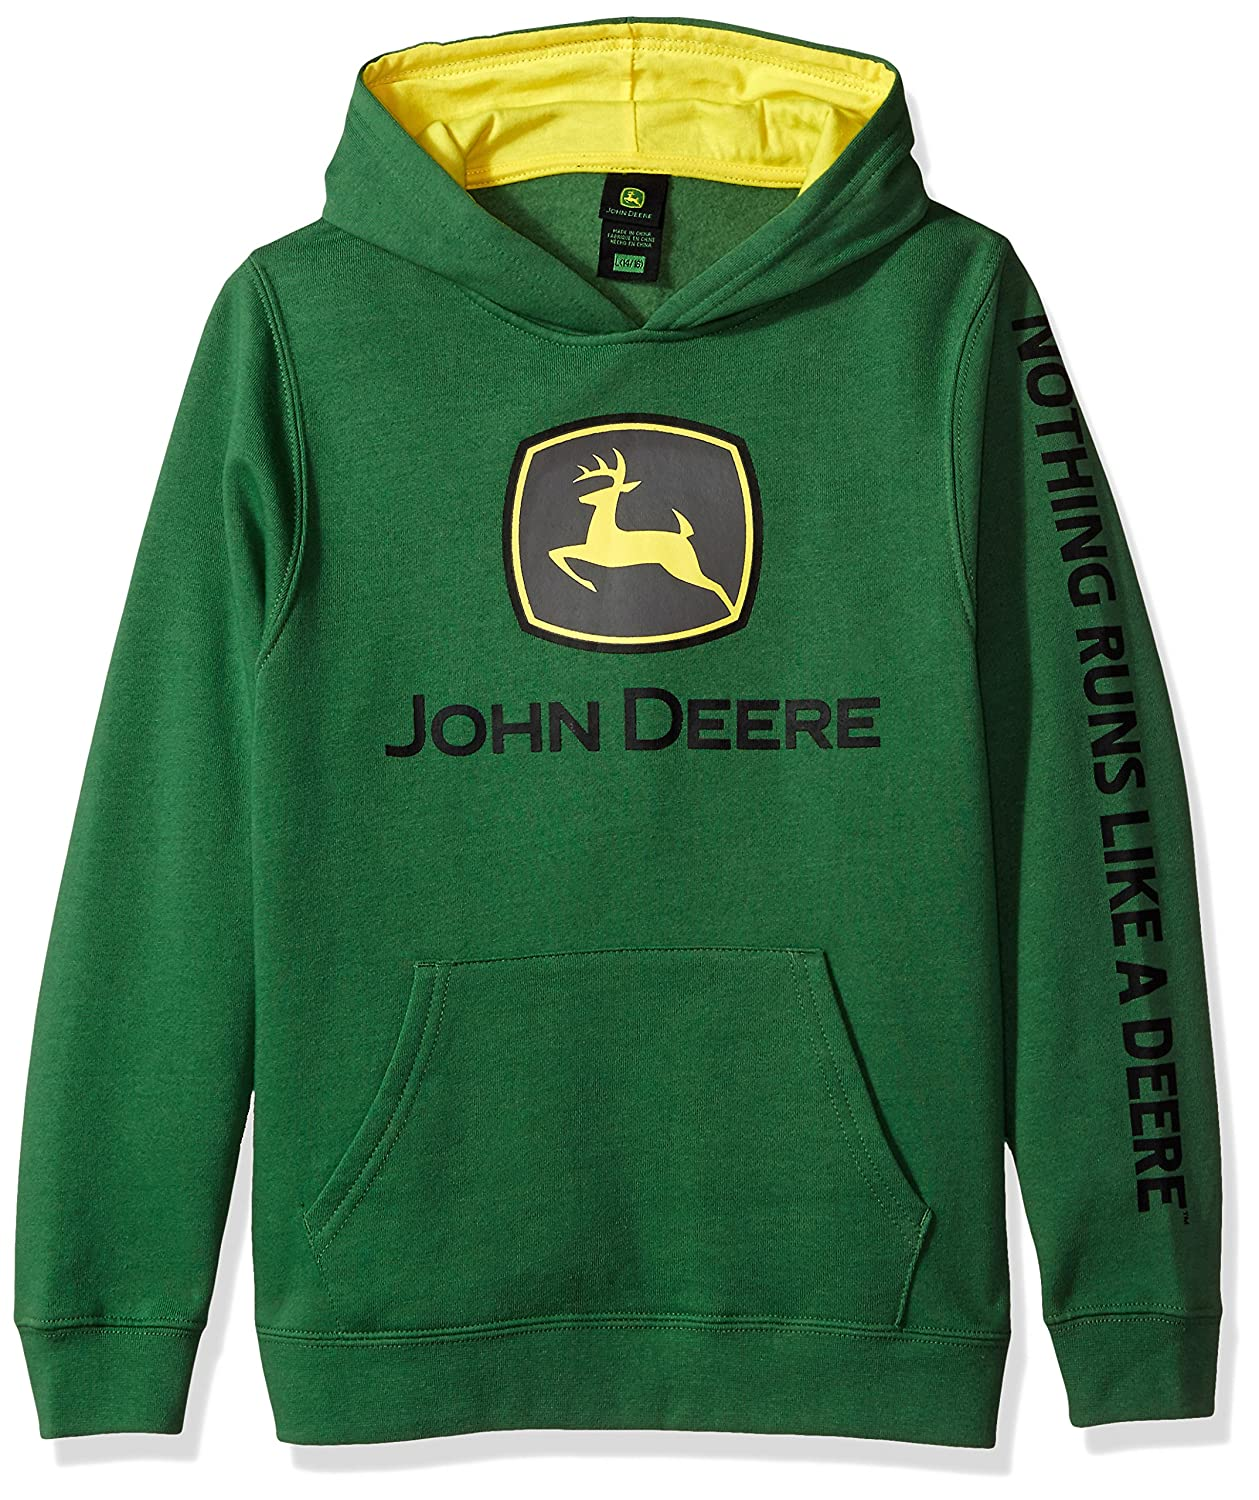 Amazon.com: John Deere Tractor Big Boys Youth Pullover Fleece Hoody Sweatshirt: Clothing